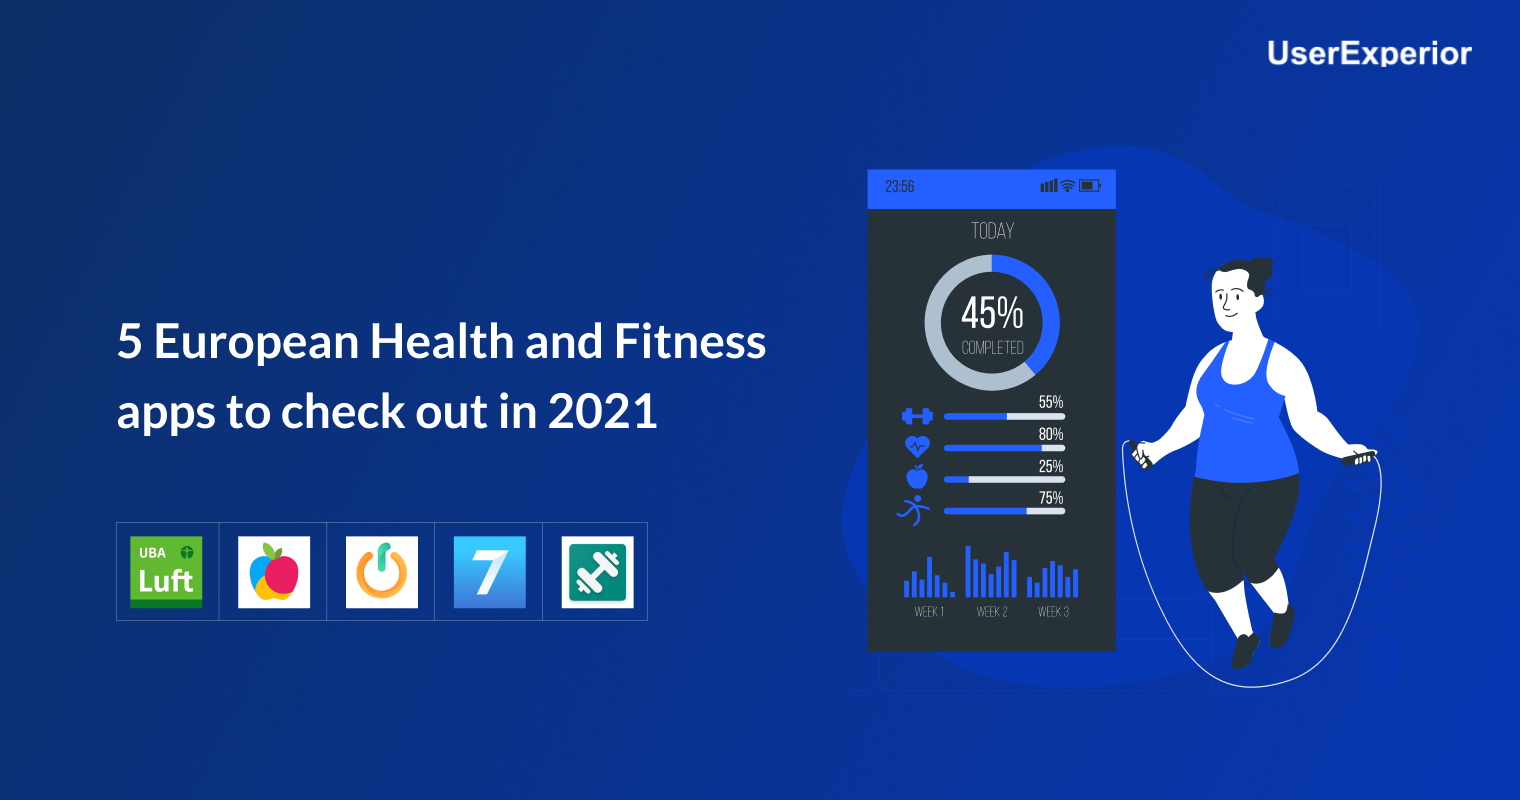 5 European Health and Fitness apps to check out in 2021